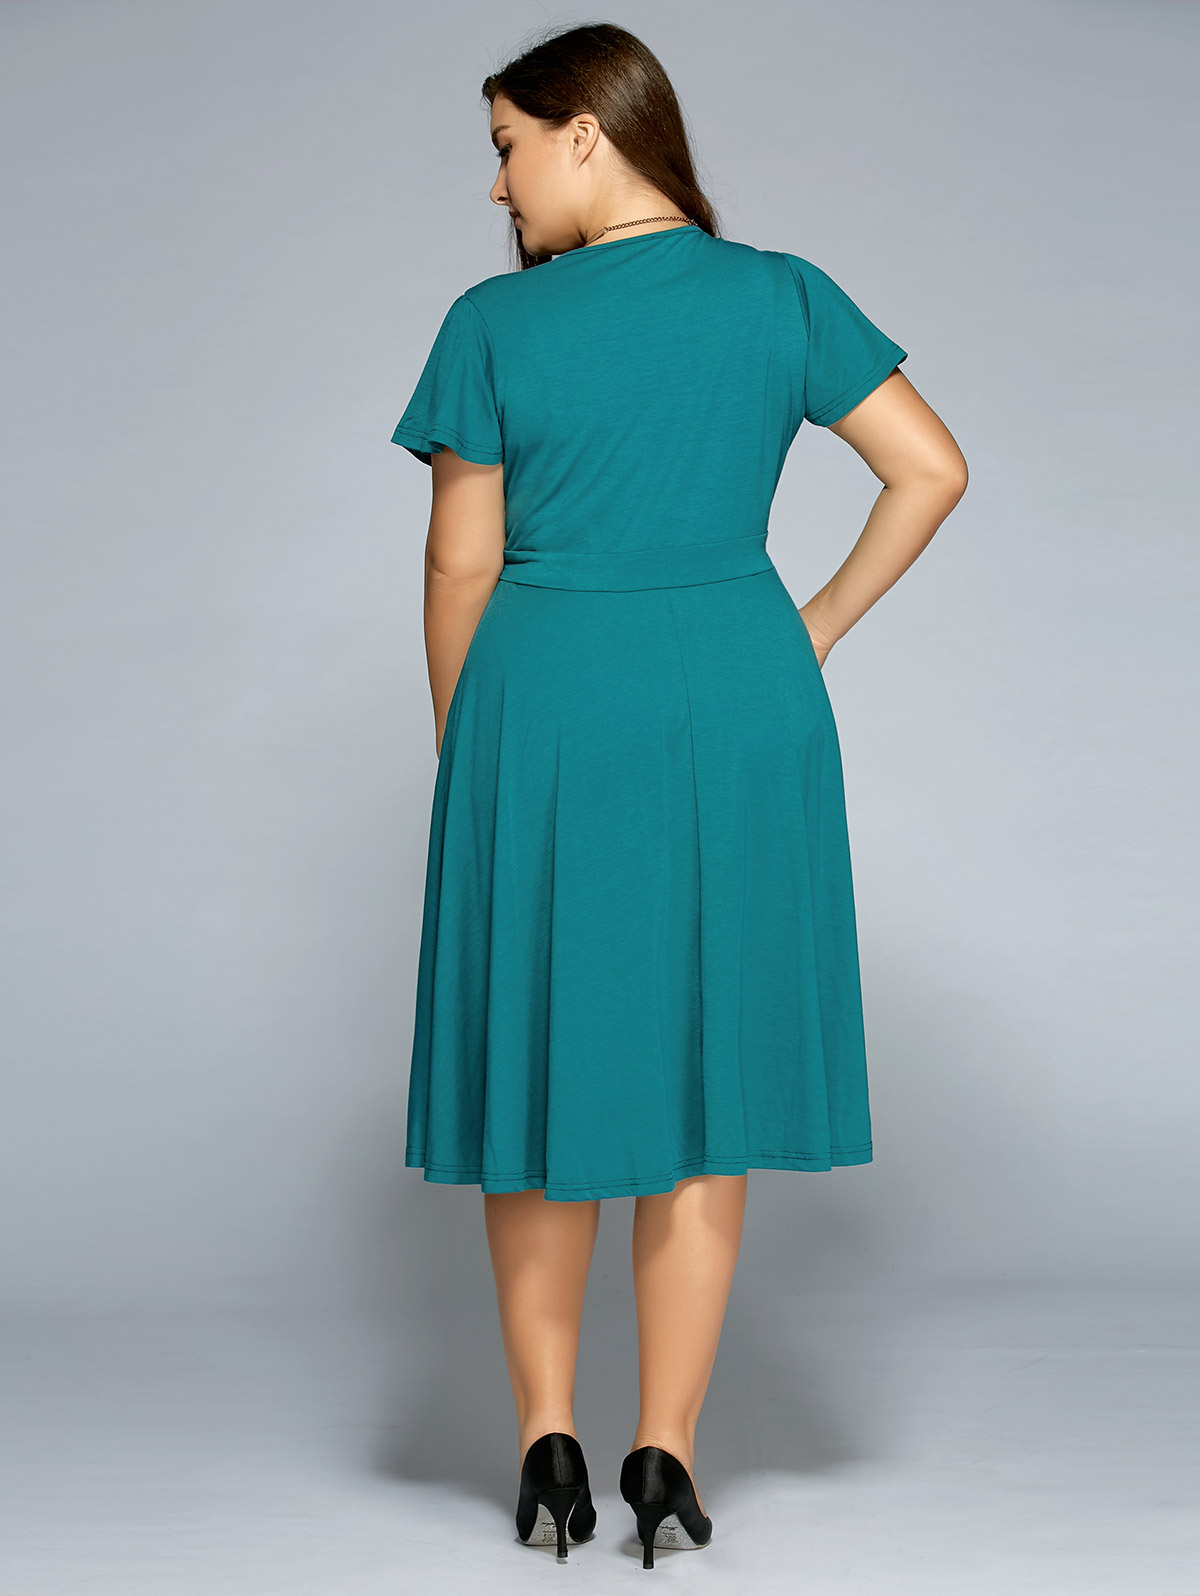 Funoc Ladies Low Cut A Line Plus Size Surplice Front Tie Swing Dress 2017  Sweet V Neck Chiffon Ocean Blue Casual Dresses-in Dresses from Women s  Clothing ... 7ae14a01a6eb